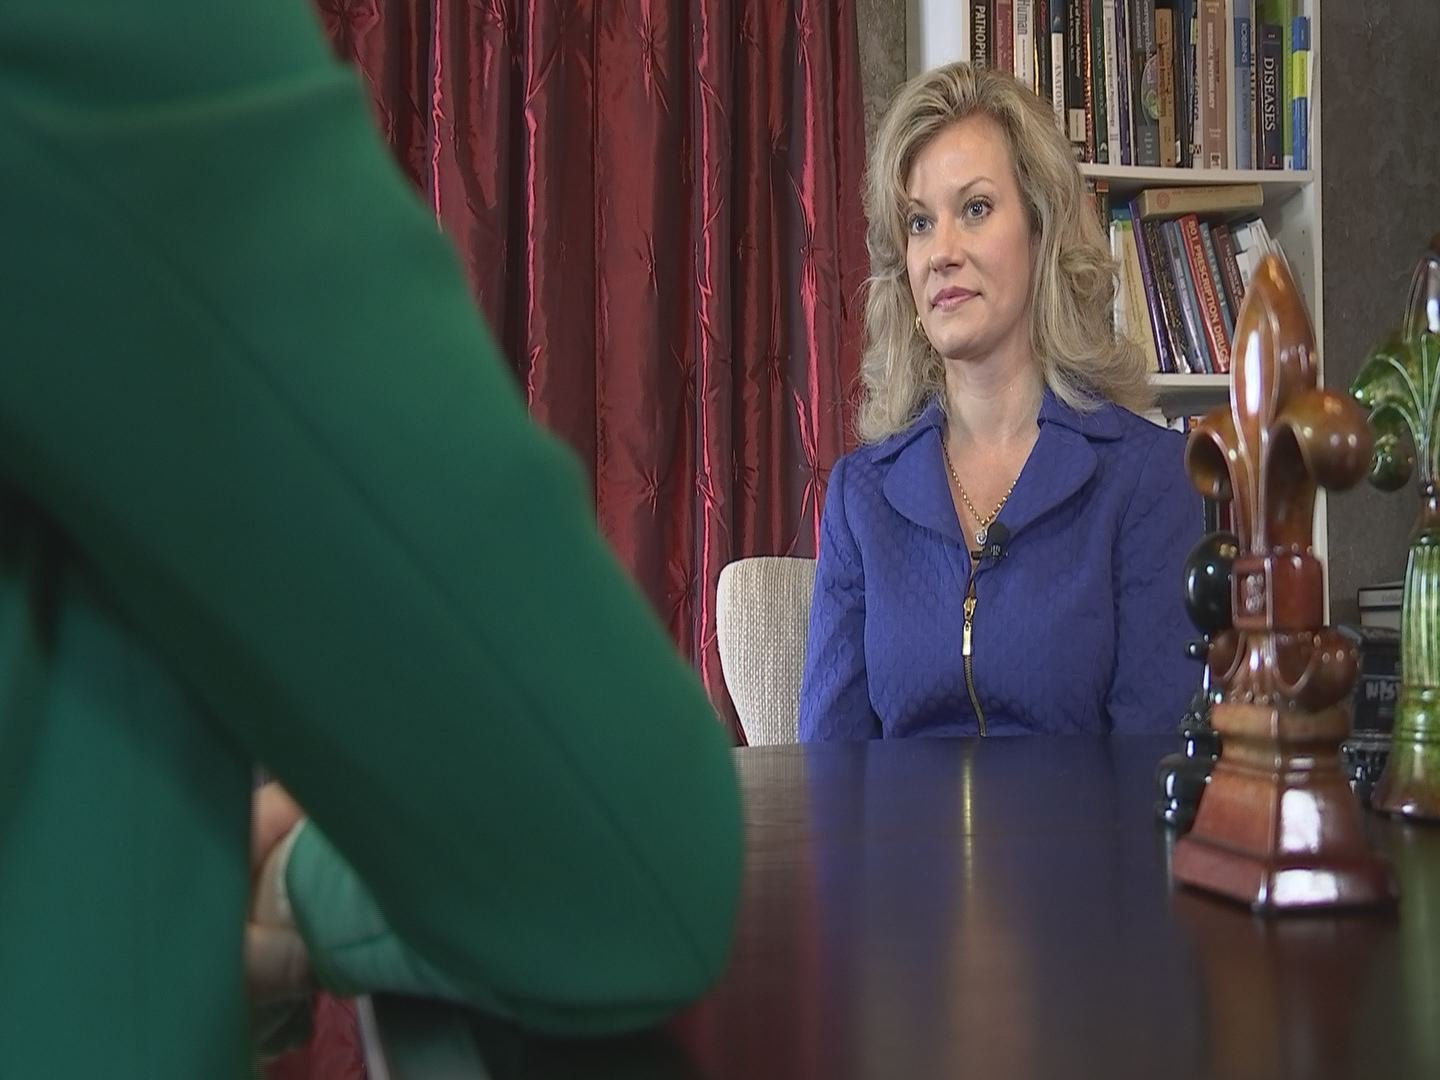 Dr. Sarah Shelton, a clinical psychologist with the Psychological Wellness Group of Paducah, explains the phenomenon of public shaming online and its impact.